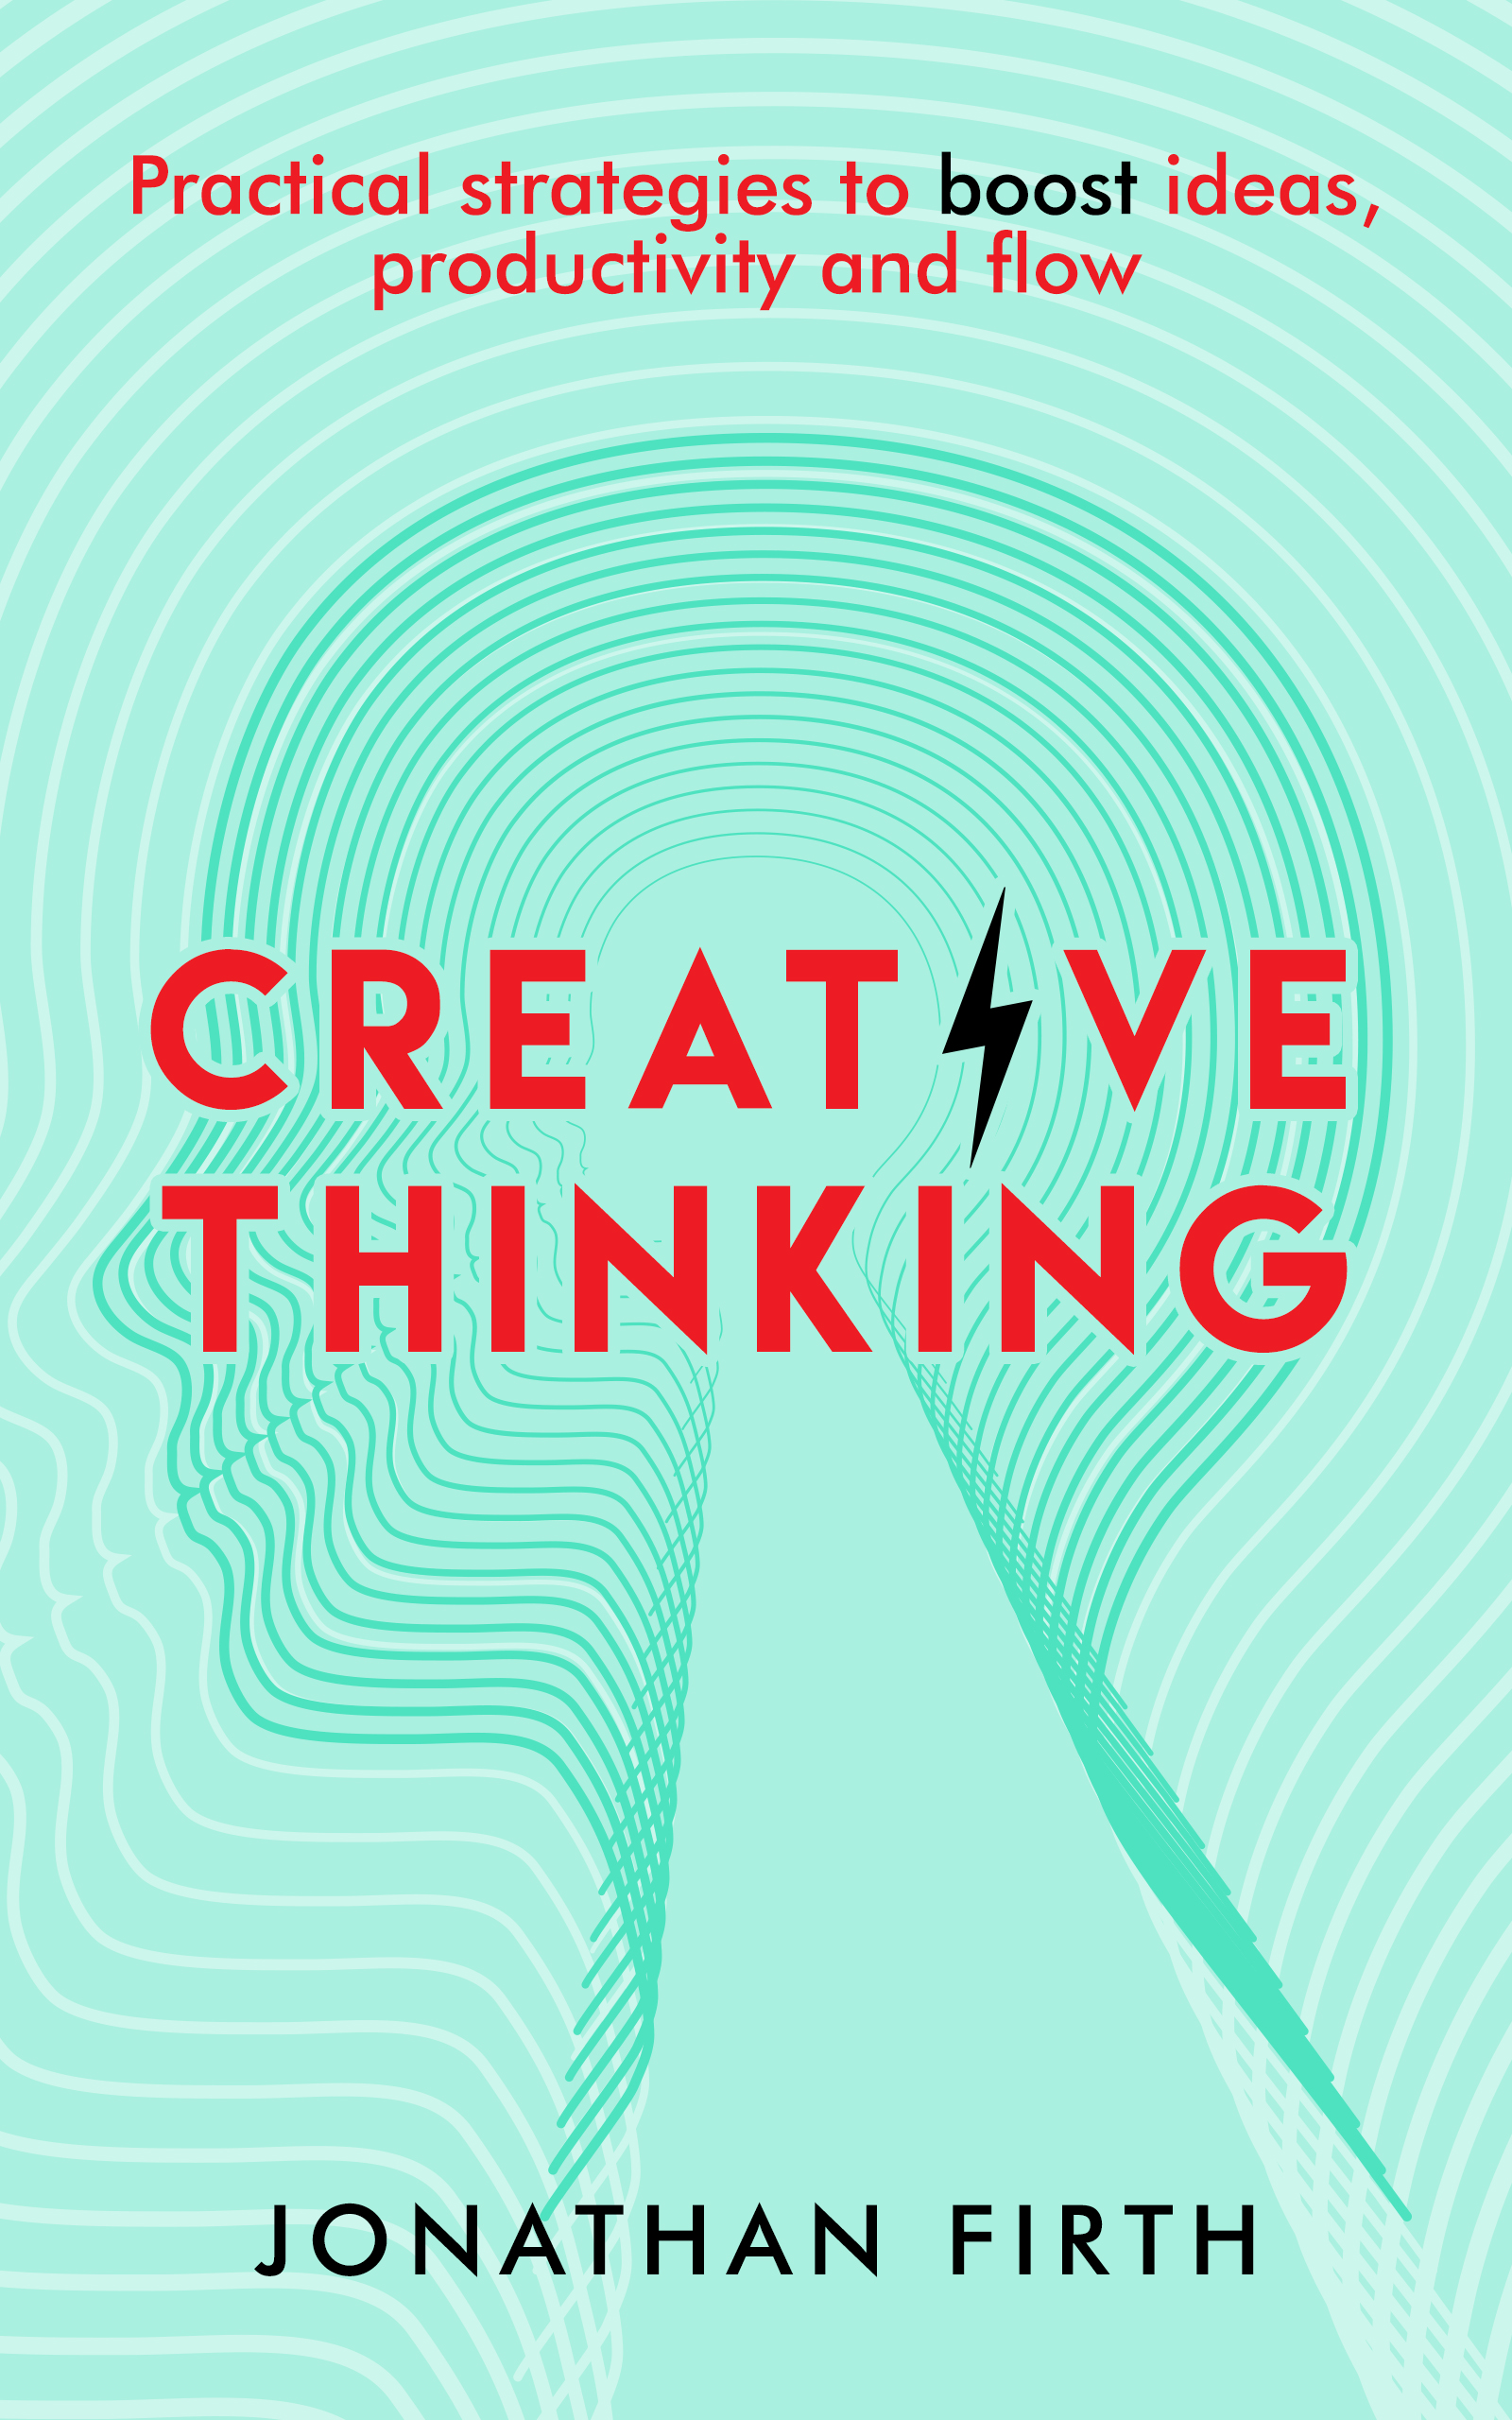 Creative thinking: Practical strategies to boost ideas, productivity and flow - Boost the effectiveness and the quality of your creative thinking with these simple, evidence-based strategies. This book will guide you through the stages of the creative process, from idea generation to effective work habits. All of the strategies are rooted in cutting-edge cognitive science. They can be applied to artistic pursuits such as writing and painting, and also to business, education, hobbies, and much more. Divided into two sections -